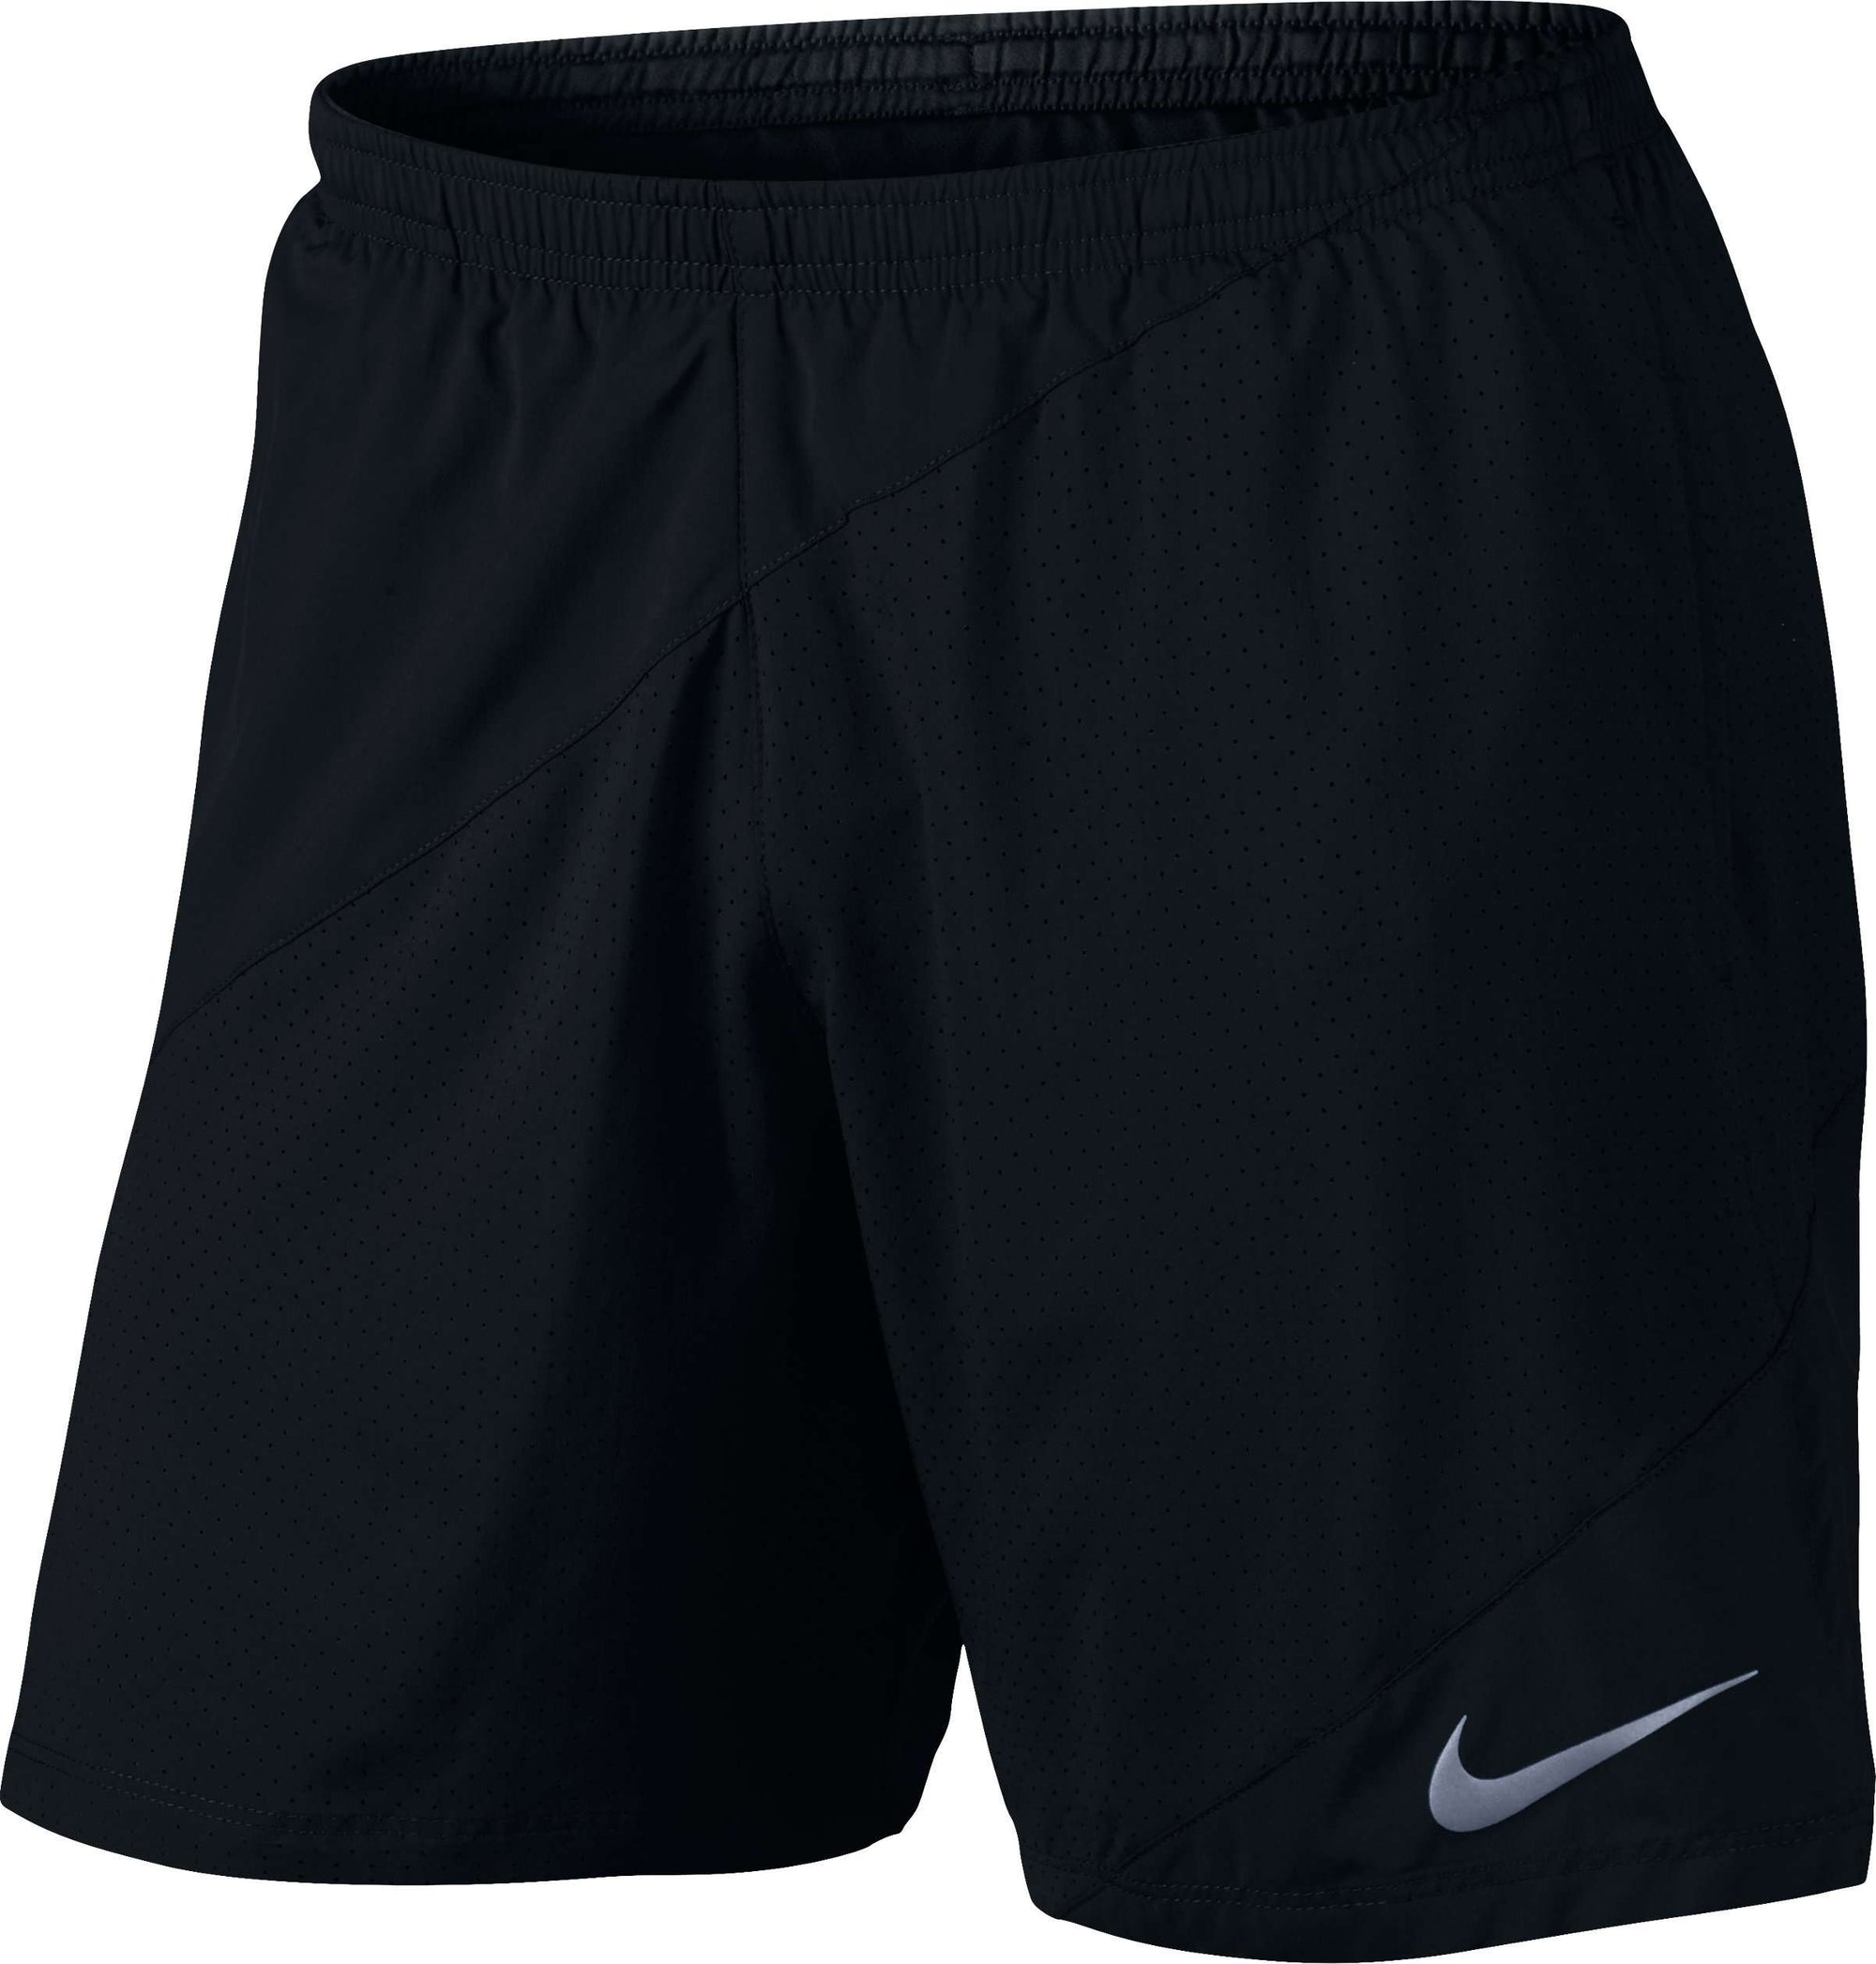 "Nike Men's Flex Short 7"" Distance Short - BlackToe Running Inc. - Toronto Running Specialty Store"